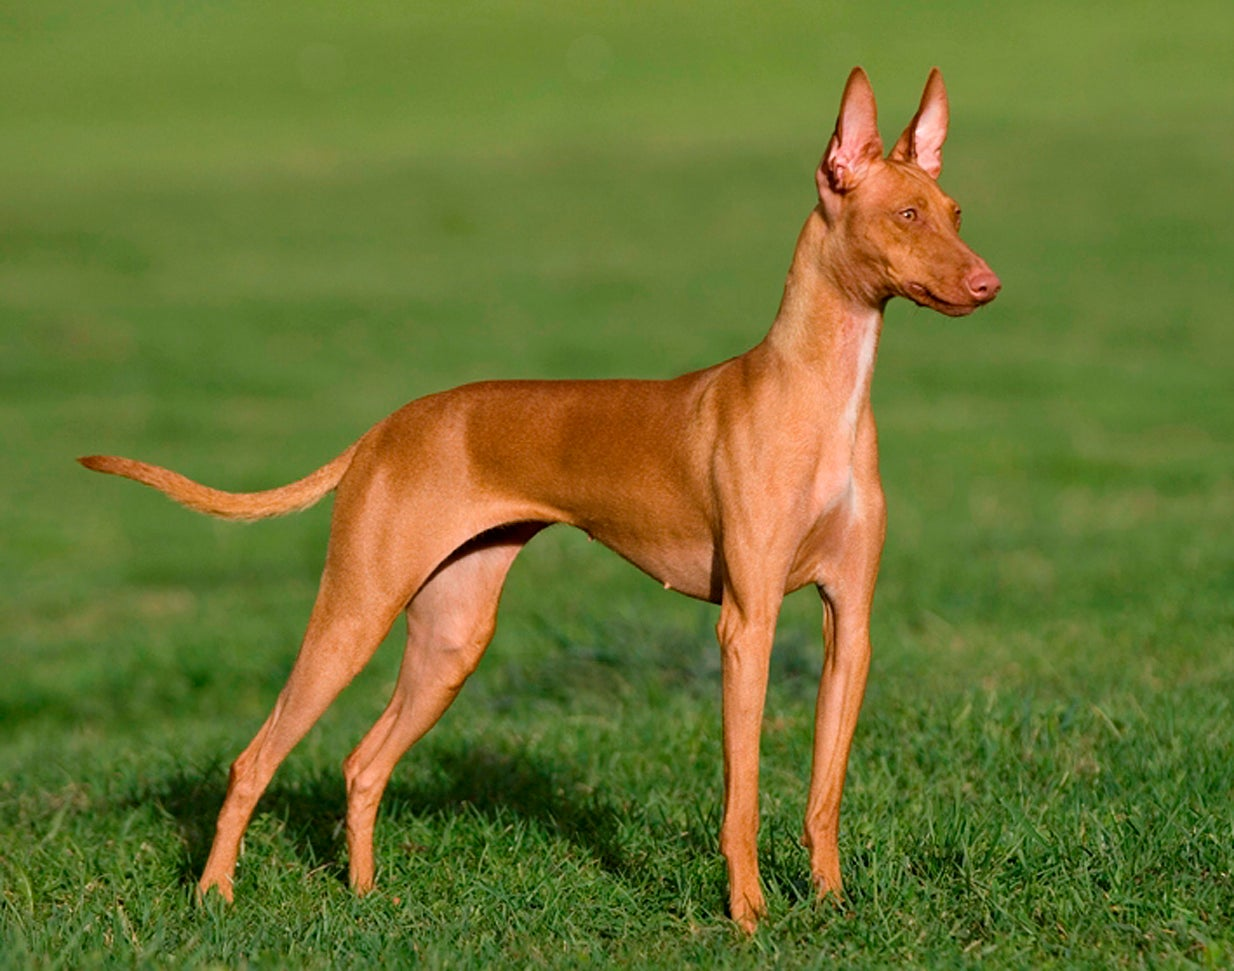 Podenco Canario standing in the grass